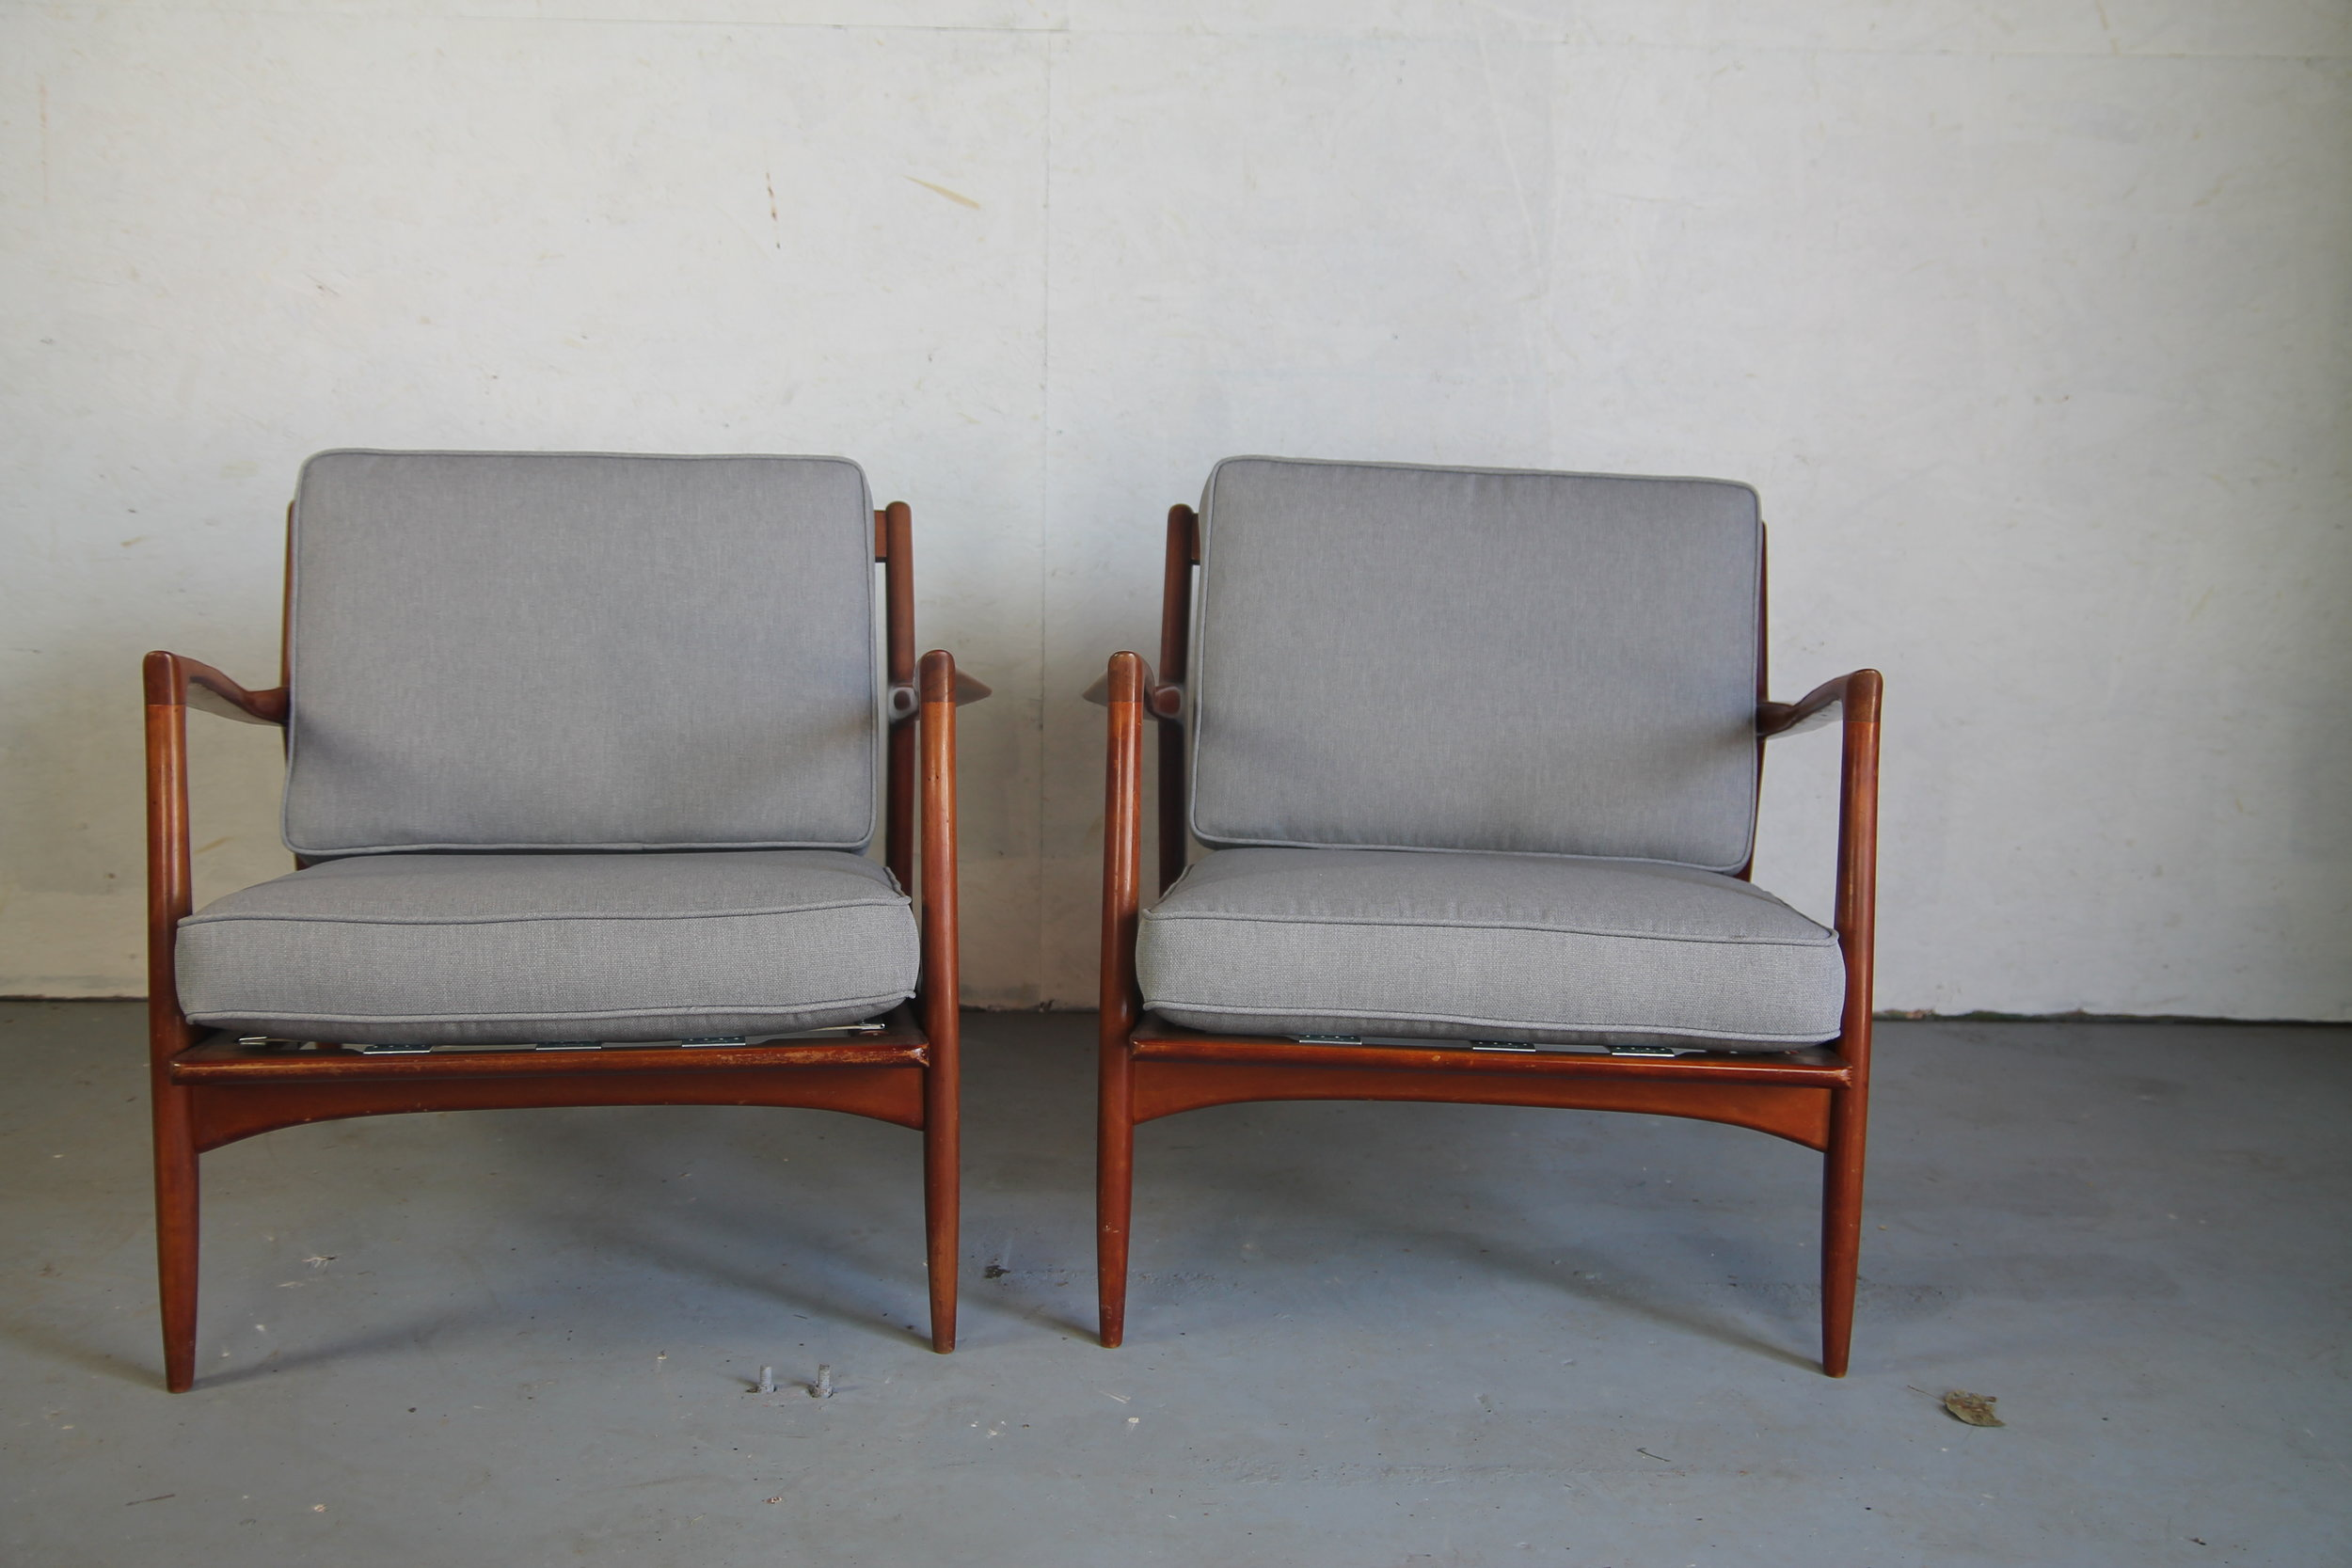 Selig Chair Ib Kofod Larsen Lounge Chairs For Selig